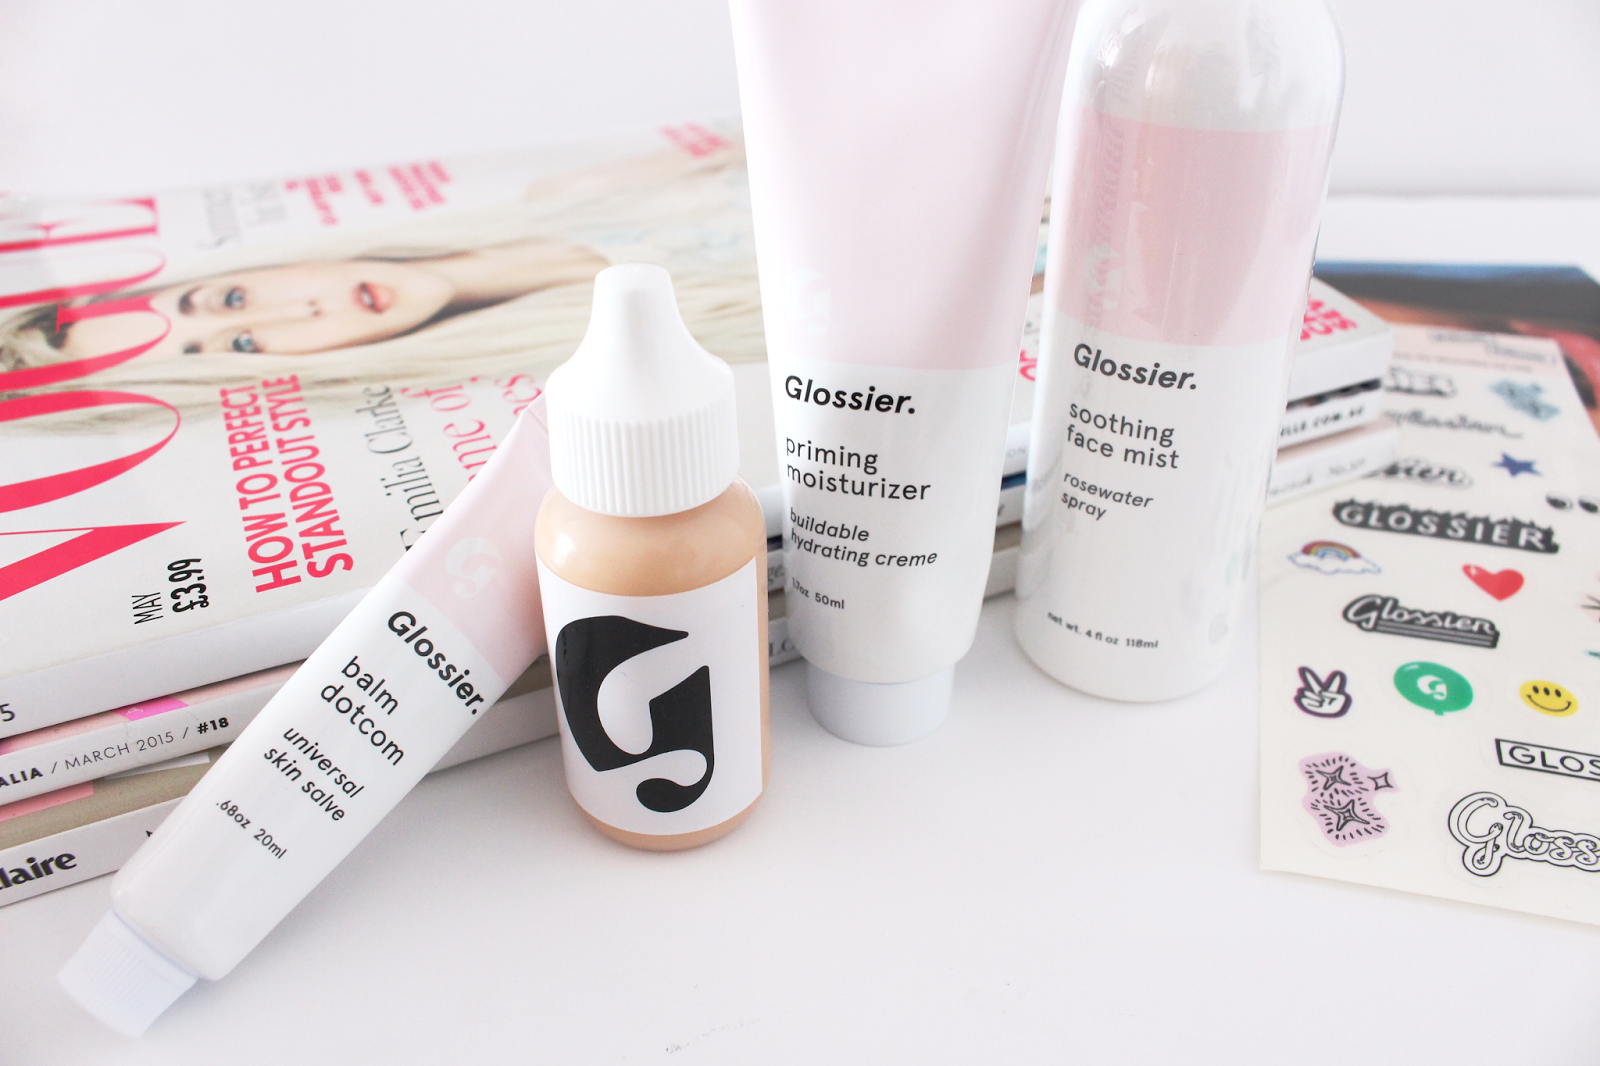 glossier-in-the-uk.png